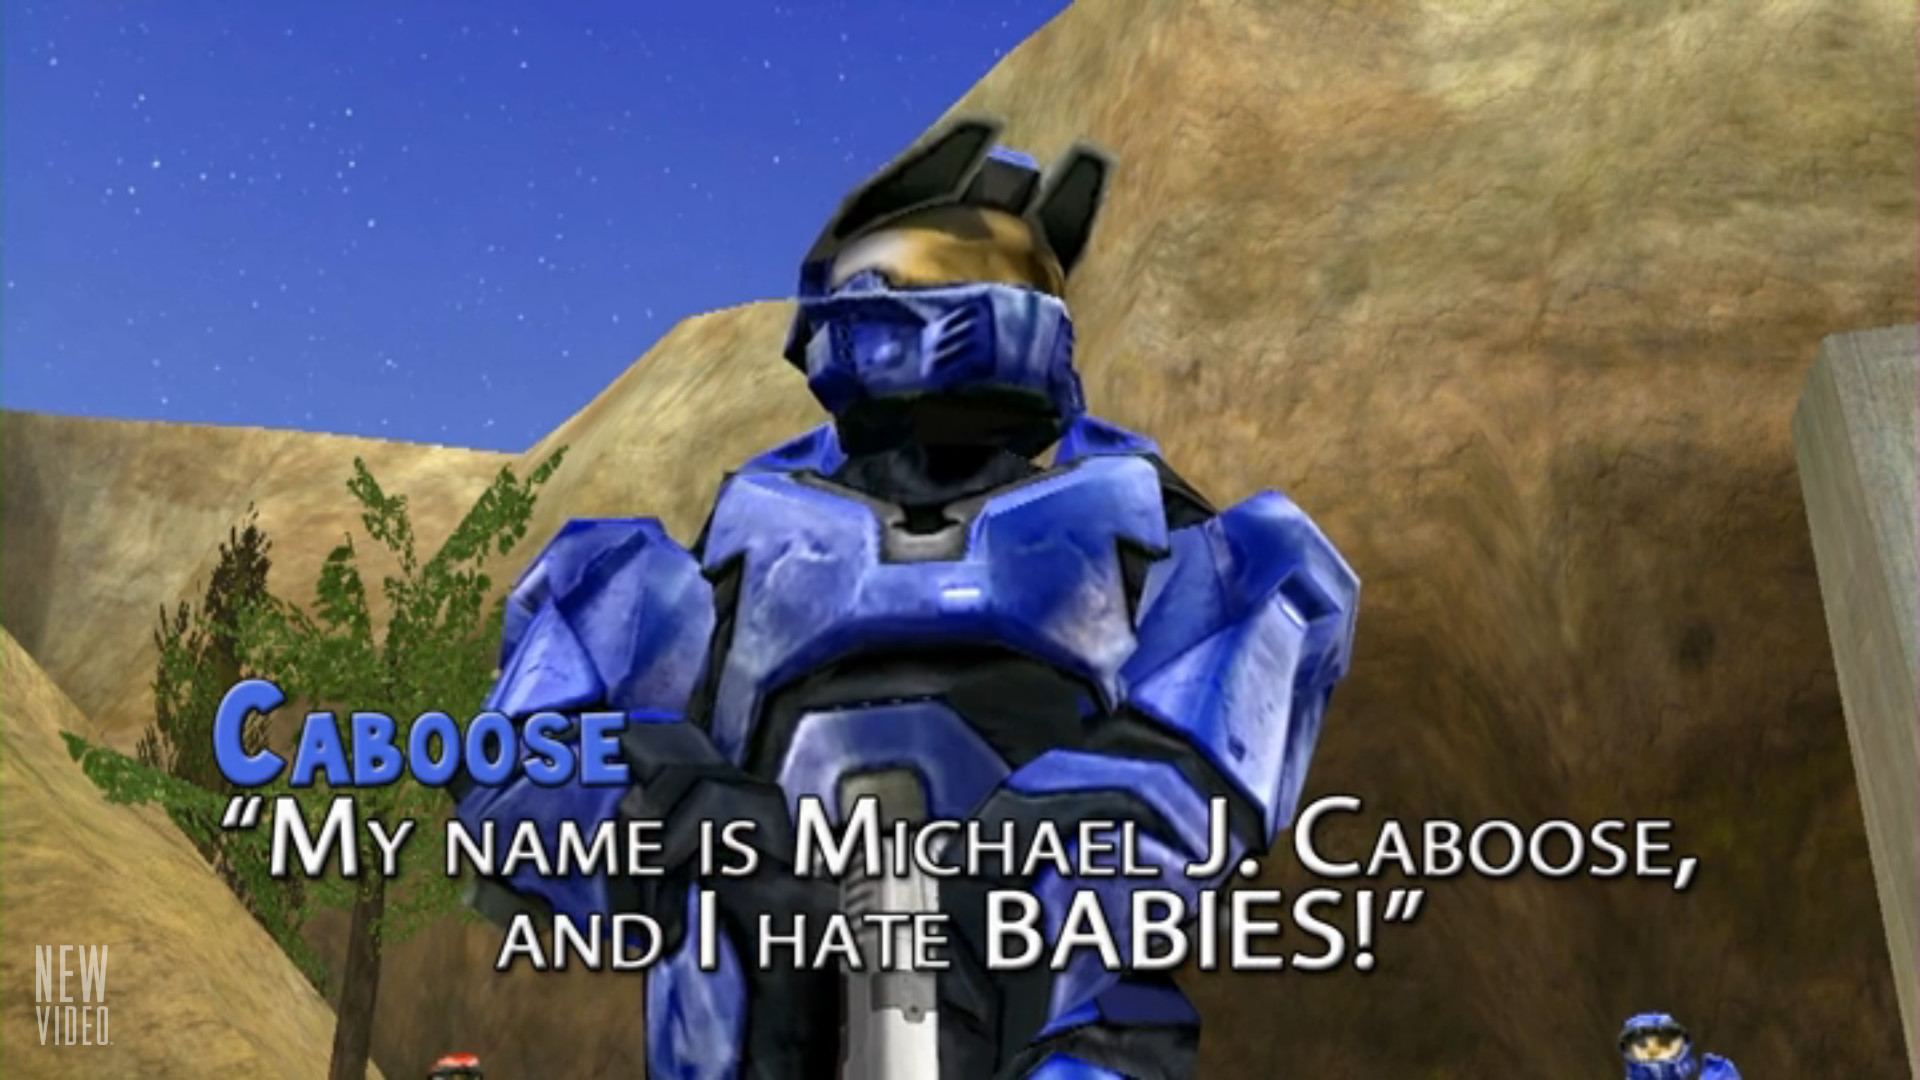 Red Vs Blue Caboose Wallpaper 86 Images